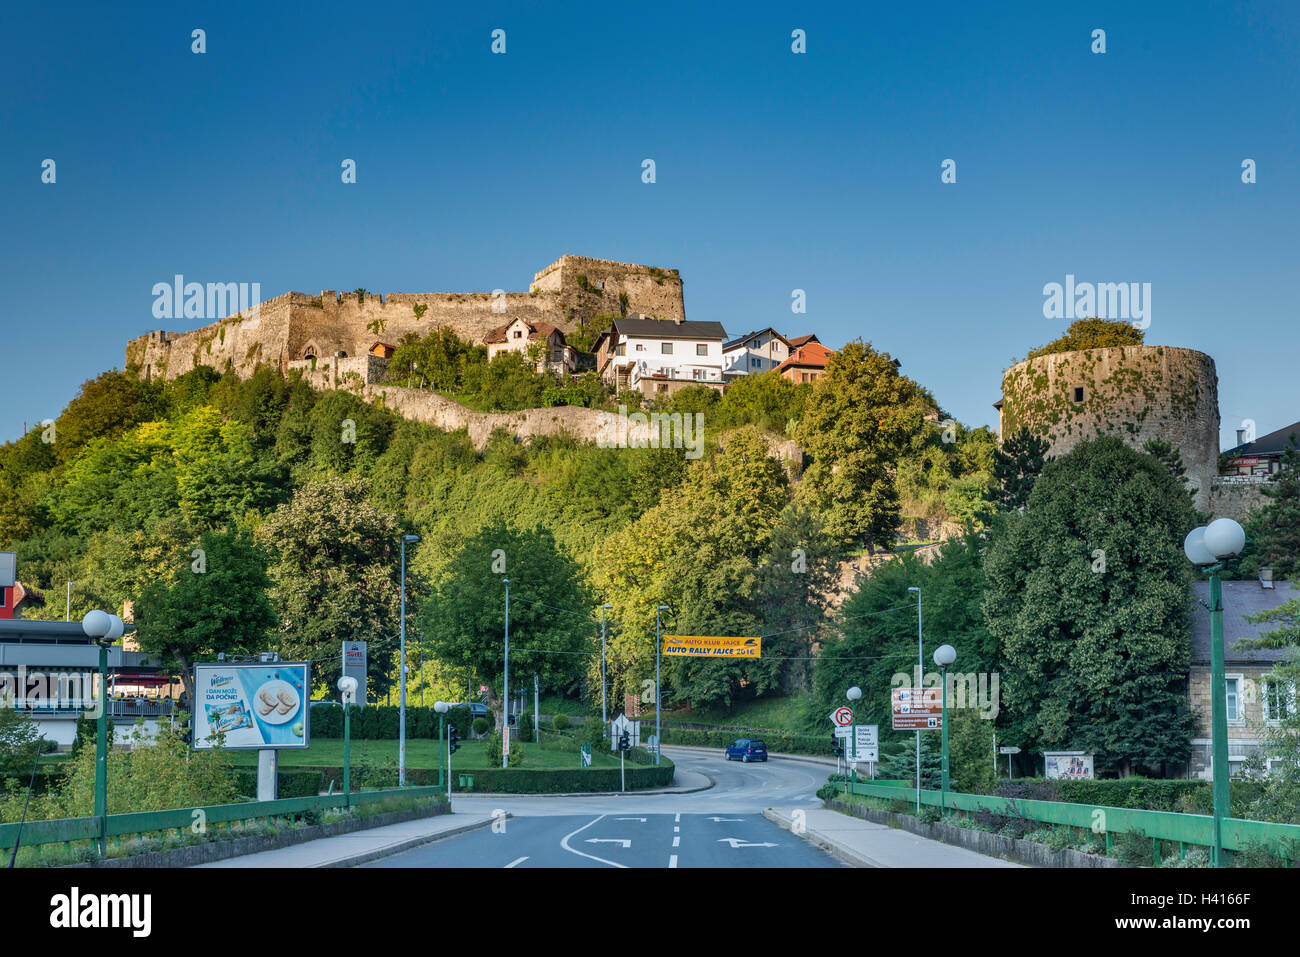 Fortress over town of Jajce, Central Bosnia Canton, Bosnia and Herzegovina - Stock Image